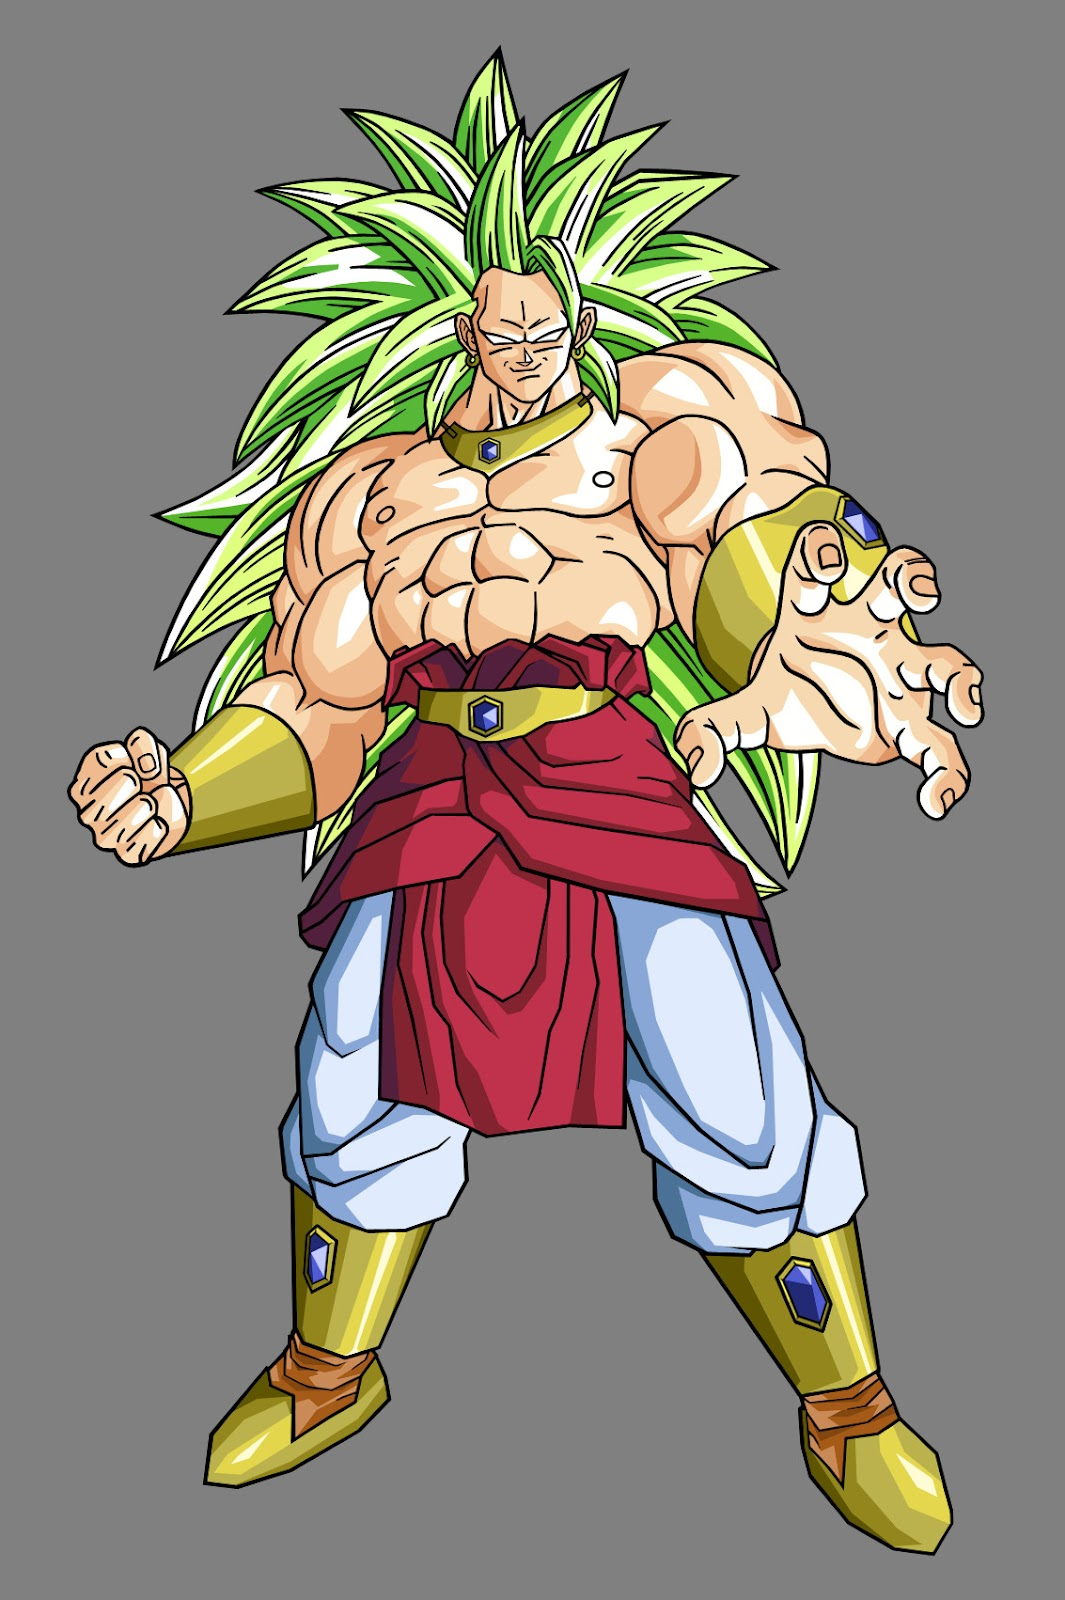 Dragon ball z wallpapers broly super saiyan 3 - Broly dragon ball gt ...